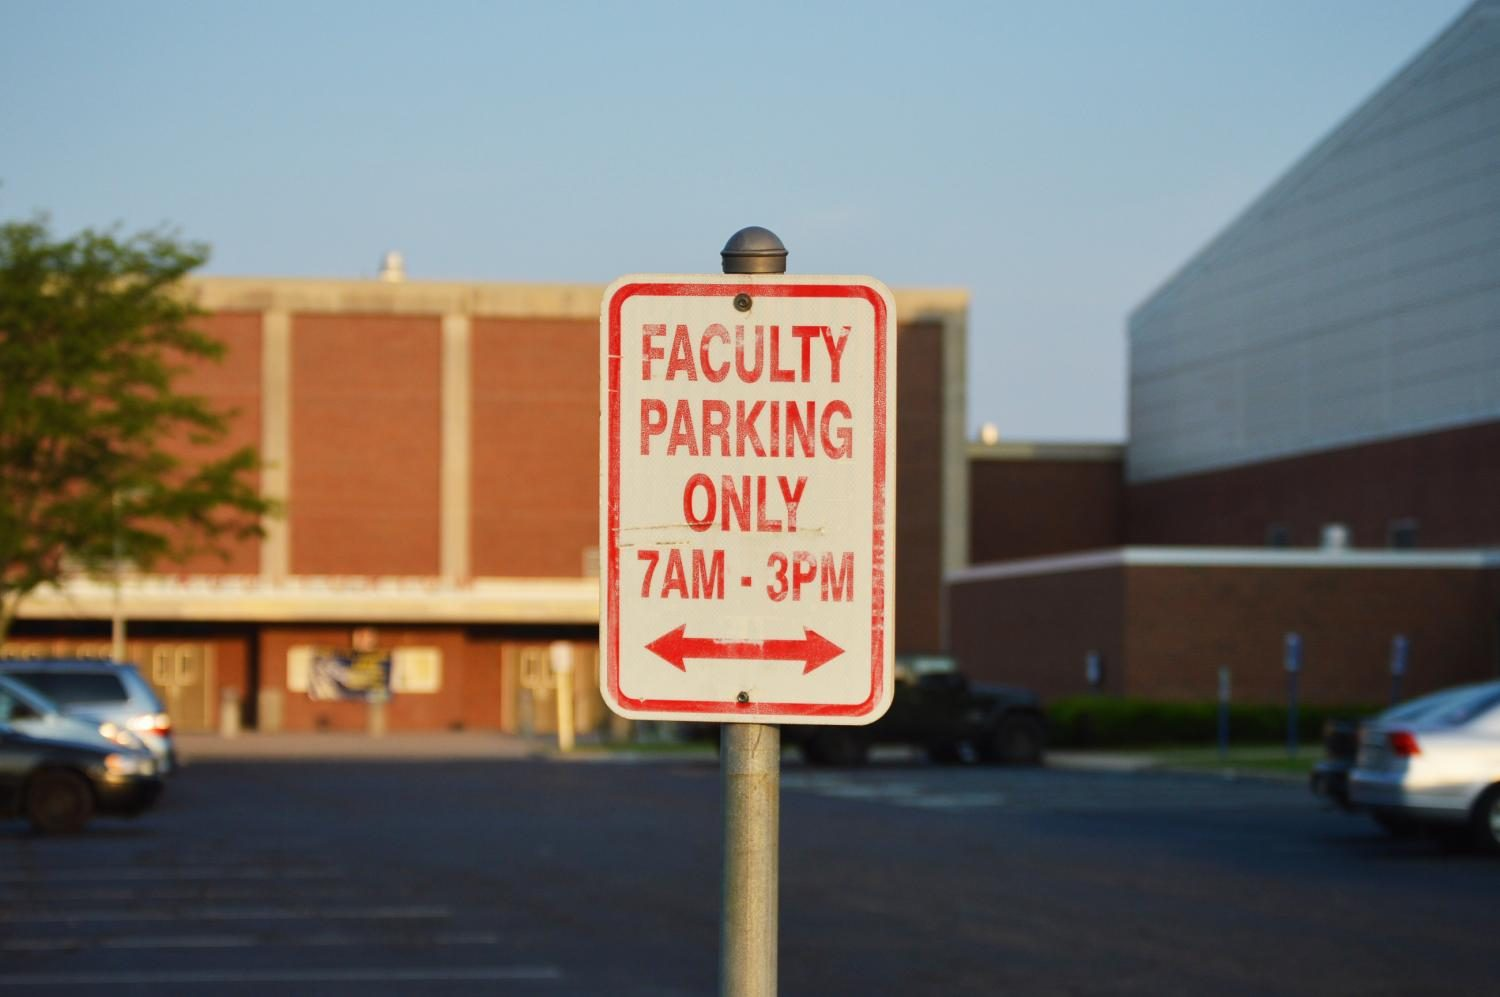 Faculty+parking+sign+shows+time+and+place+at+which+only+staff+can+park.